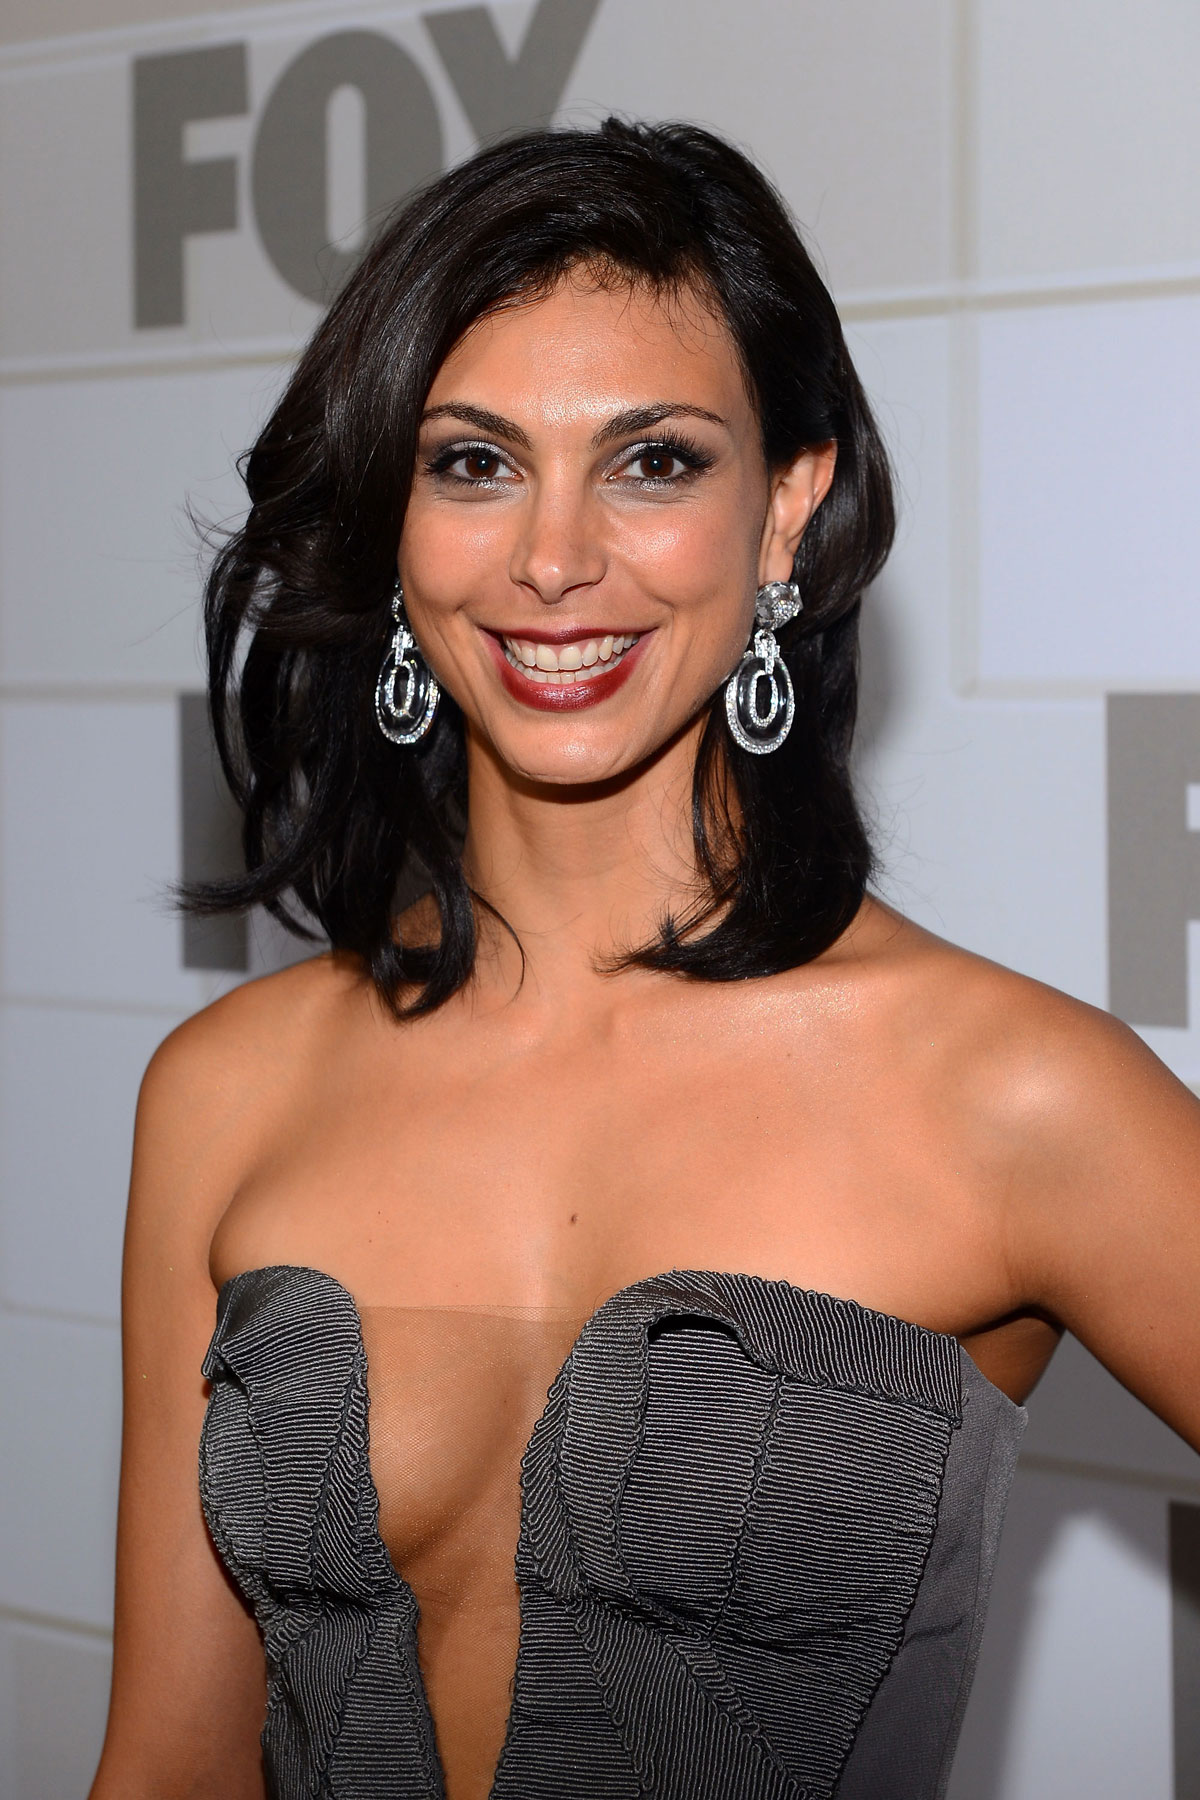 Morena Baccarin Background